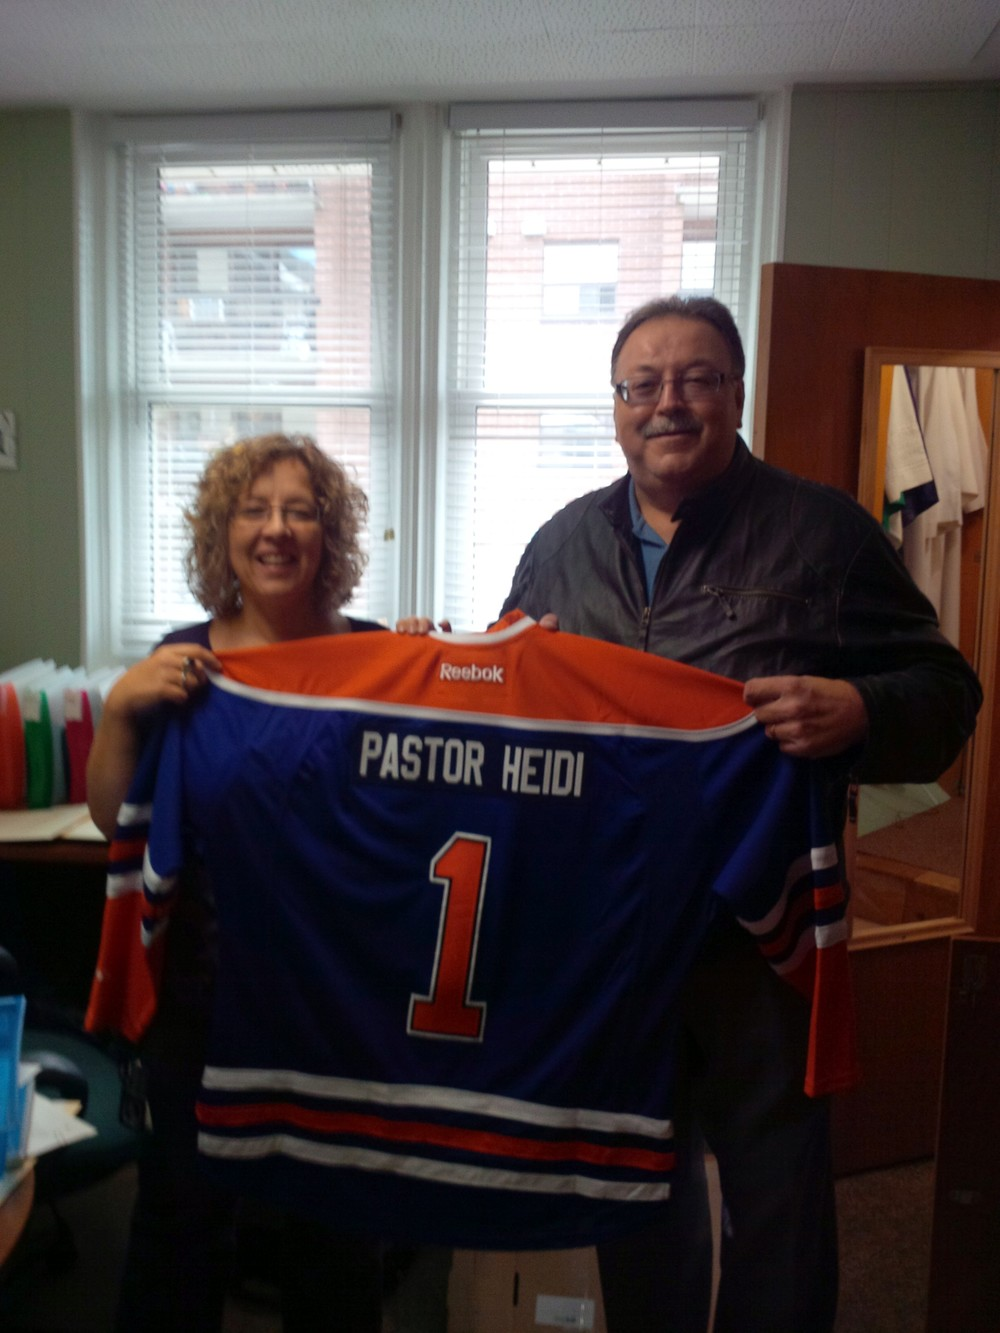 Karl Kiefer, a member of the church council, presented Pastor Heidi with her very own Edmonton Oilers jersey with her name stitched on it.